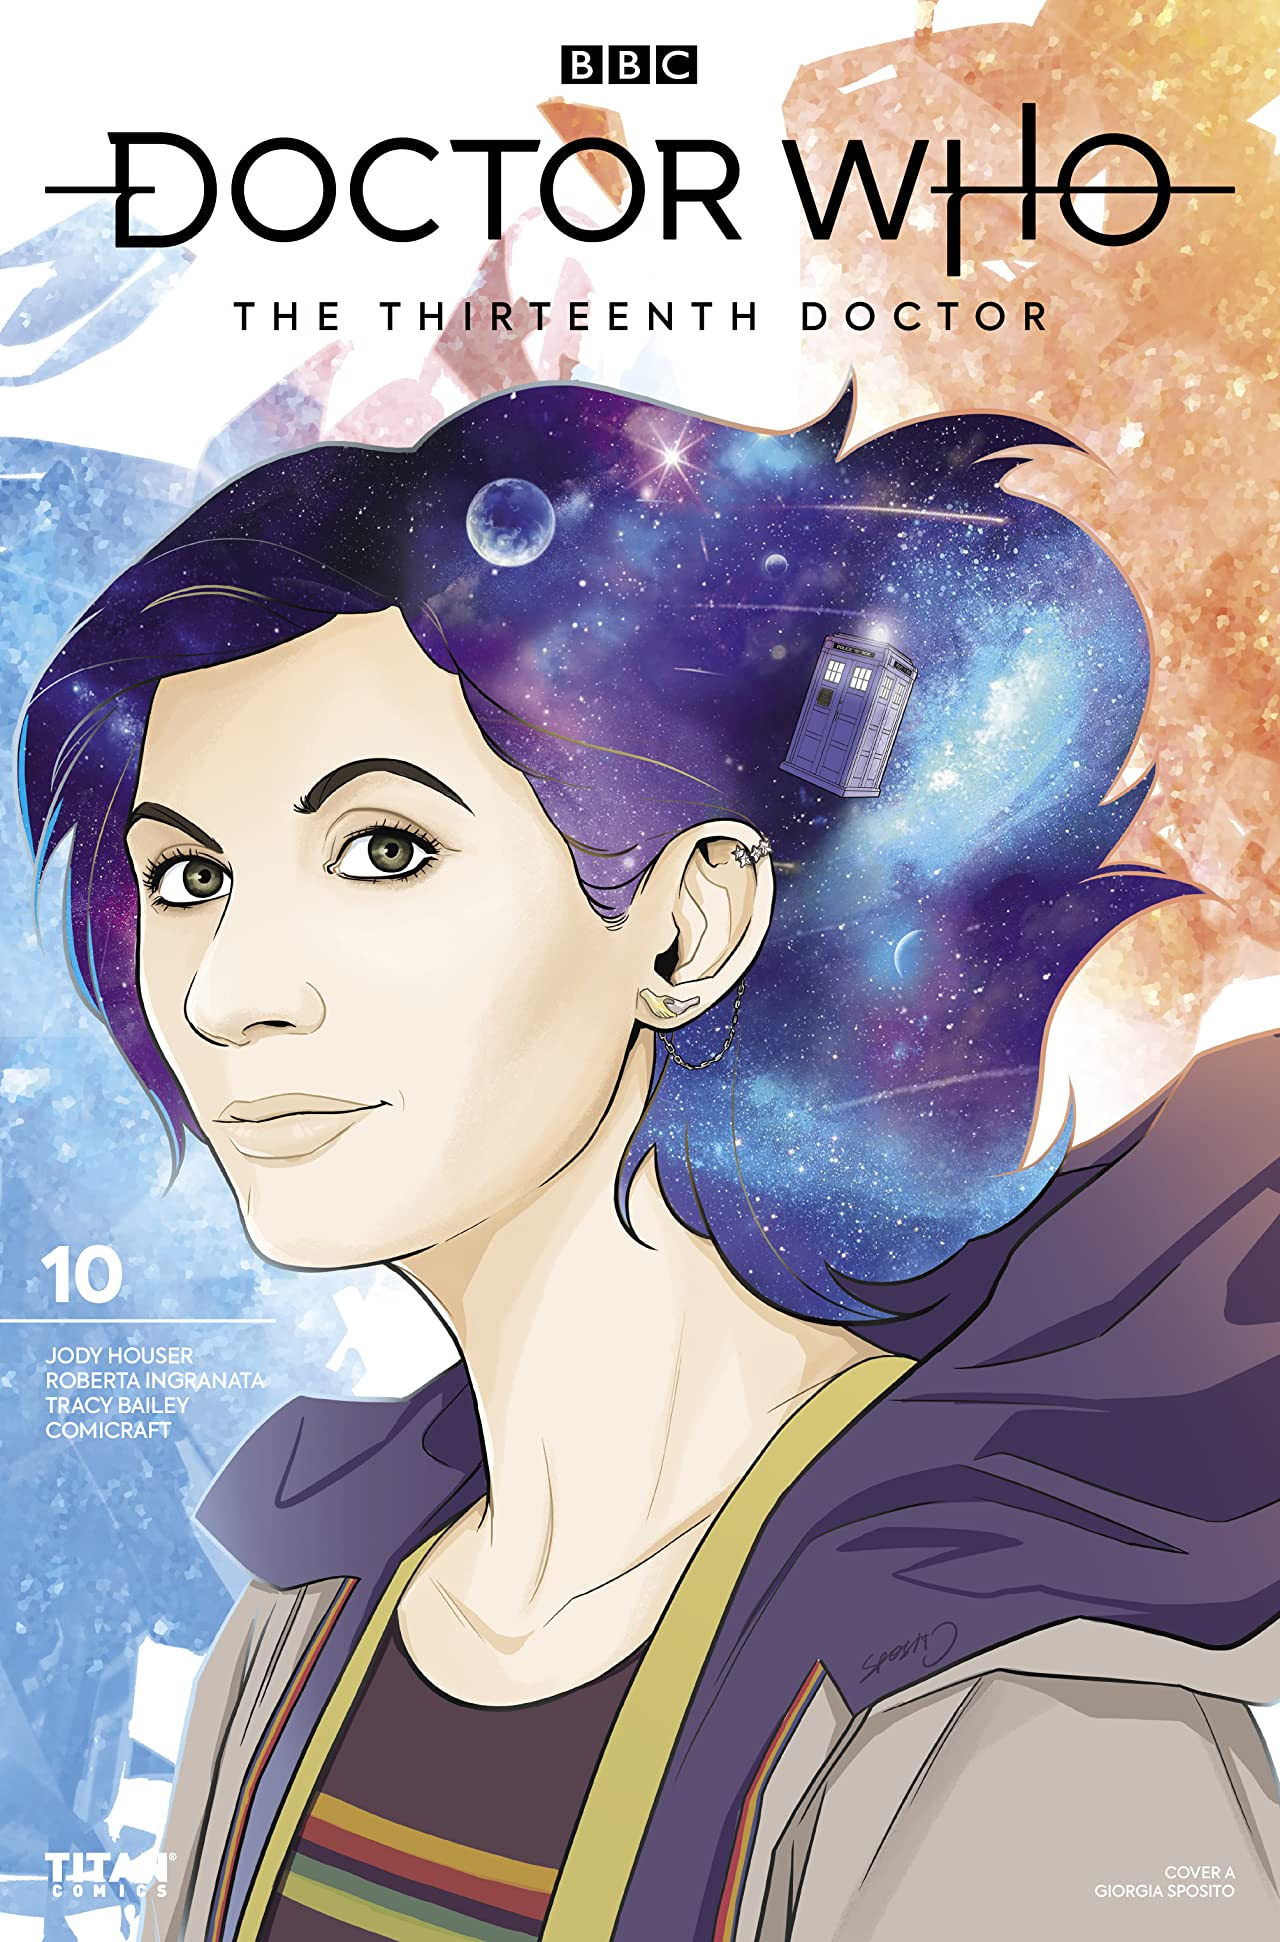 Doctor Who: The Thirteenth Doctor No.10